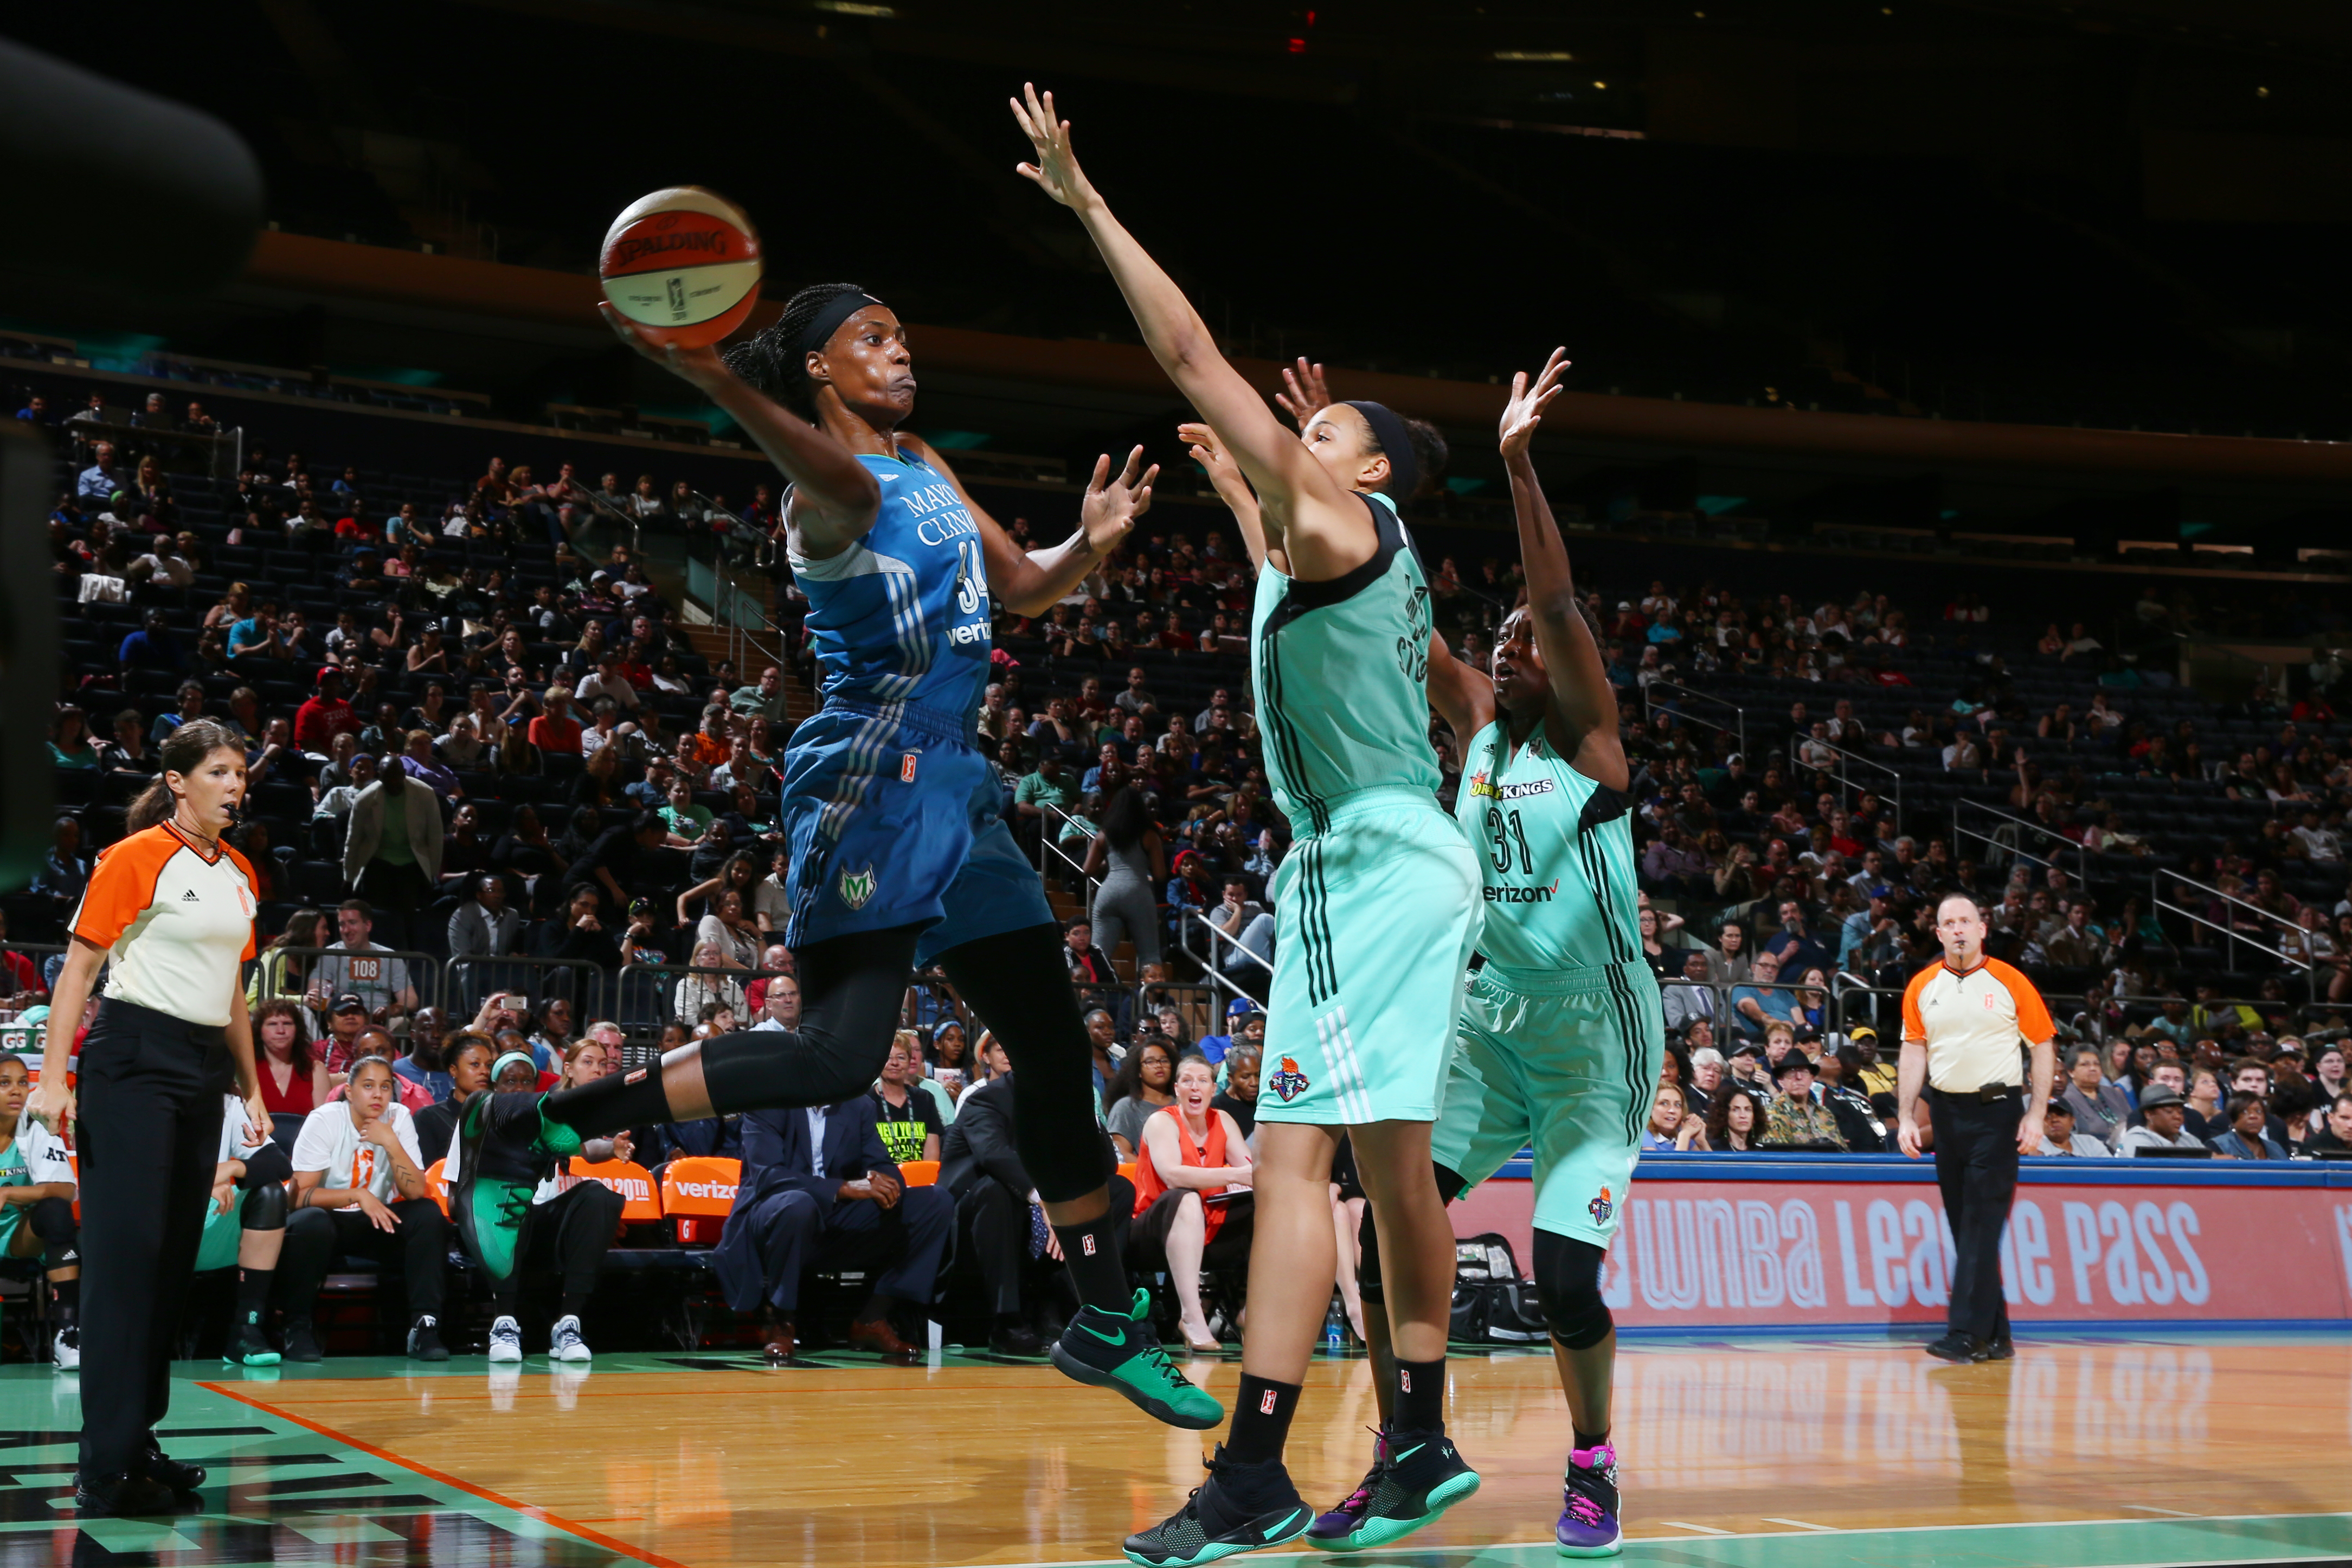 NEW YORK, NY - MAY 31: Sylvia Fowles #34 of the Minnesota Lynx throws the ball inbound against the New York Liberty during the game on May 31, 2016 at Madison Square Garden in New York, New York. NOTE TO USER: User expressly acknowledges and agrees that, by downloading and or using this Photograph, user is consenting to the terms and conditions of the Getty Images License Agreement. Mandatory Copyright Notice: Copyright 2016 NBAE (Photo by Mike Stobe/NBAE via Getty Images)